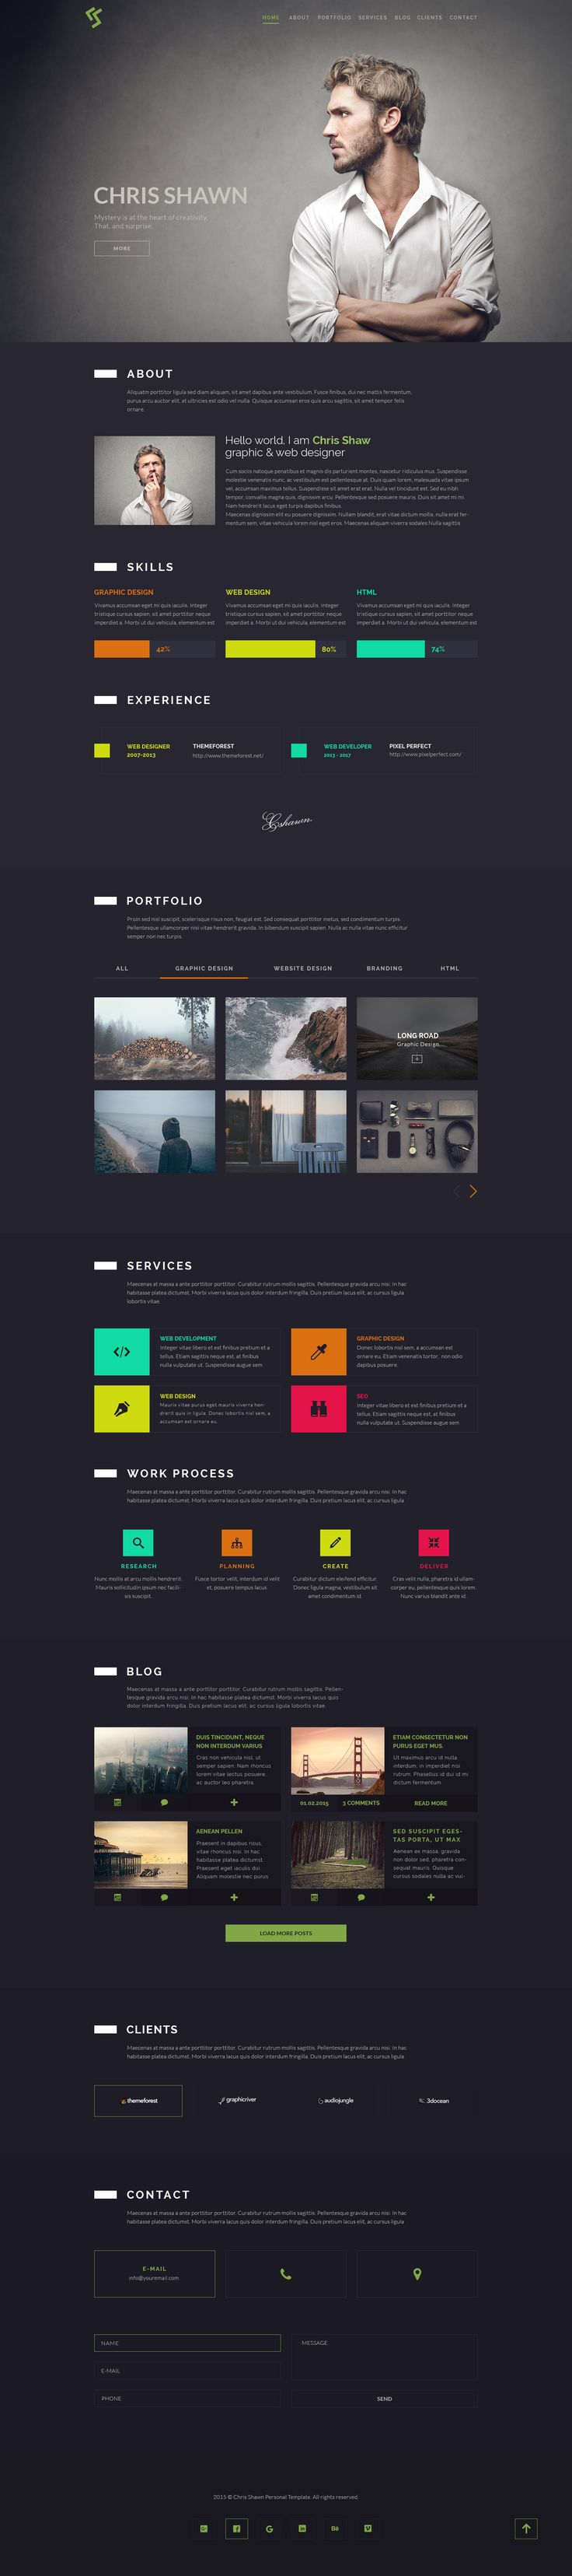 Chris Shawn - One Page PSD Template #psd • Download ➝ https://themeforest.net/item/chris-shawn-one-page-psd-template/18774941?ref=pxcr